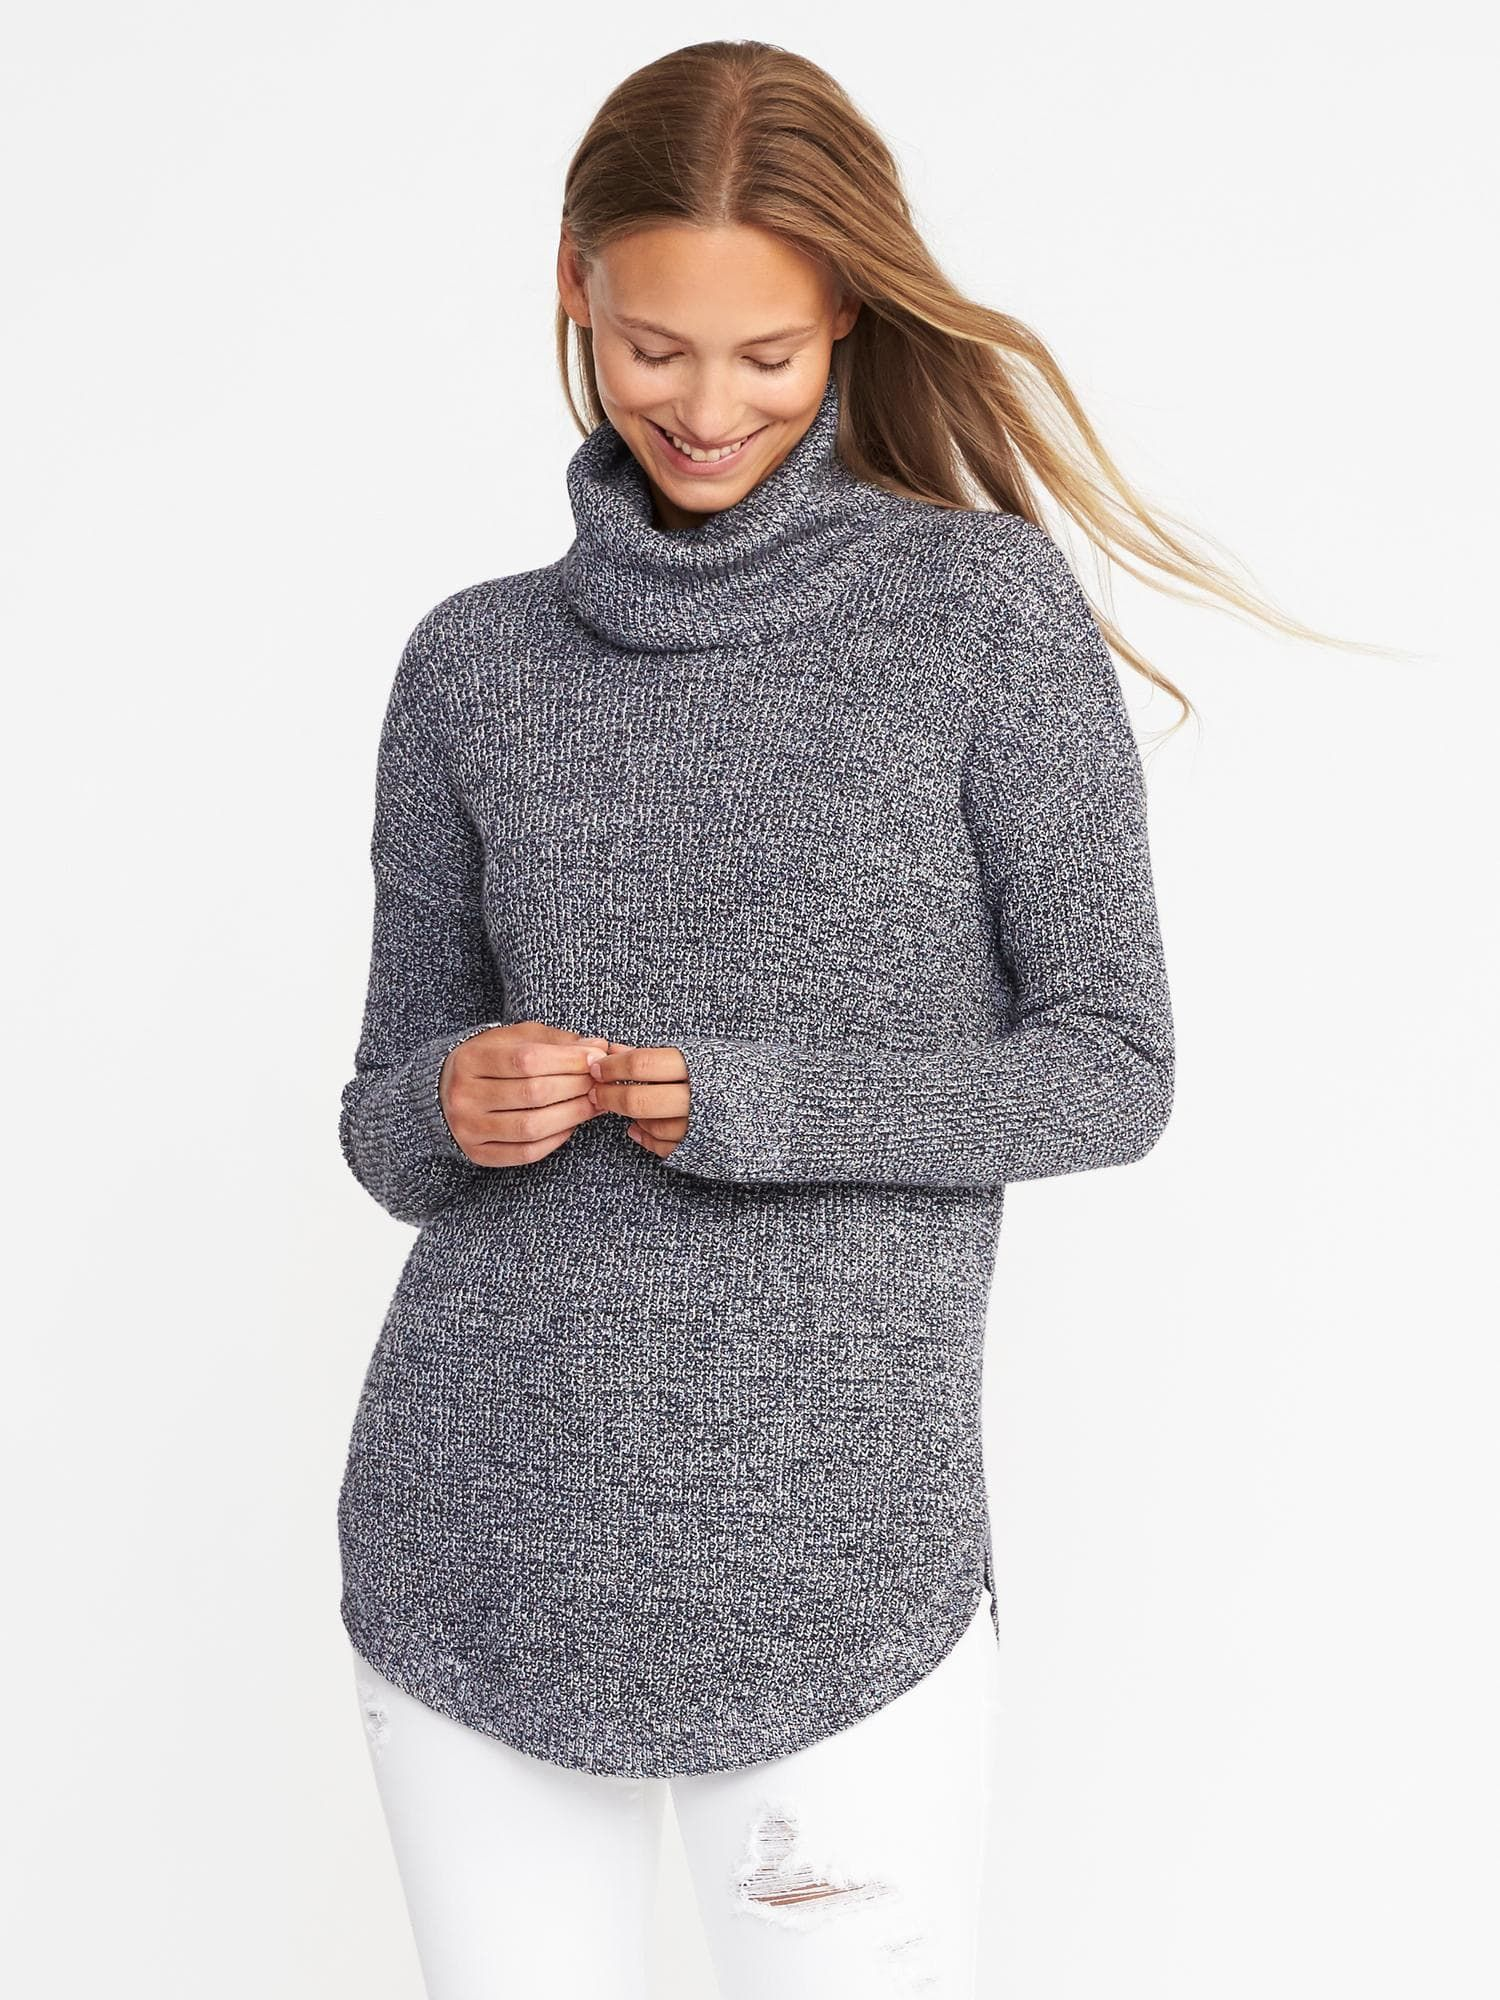 Textured Turtleneck Tunic Old Navy | Clothes | Pinterest | Tunics ...